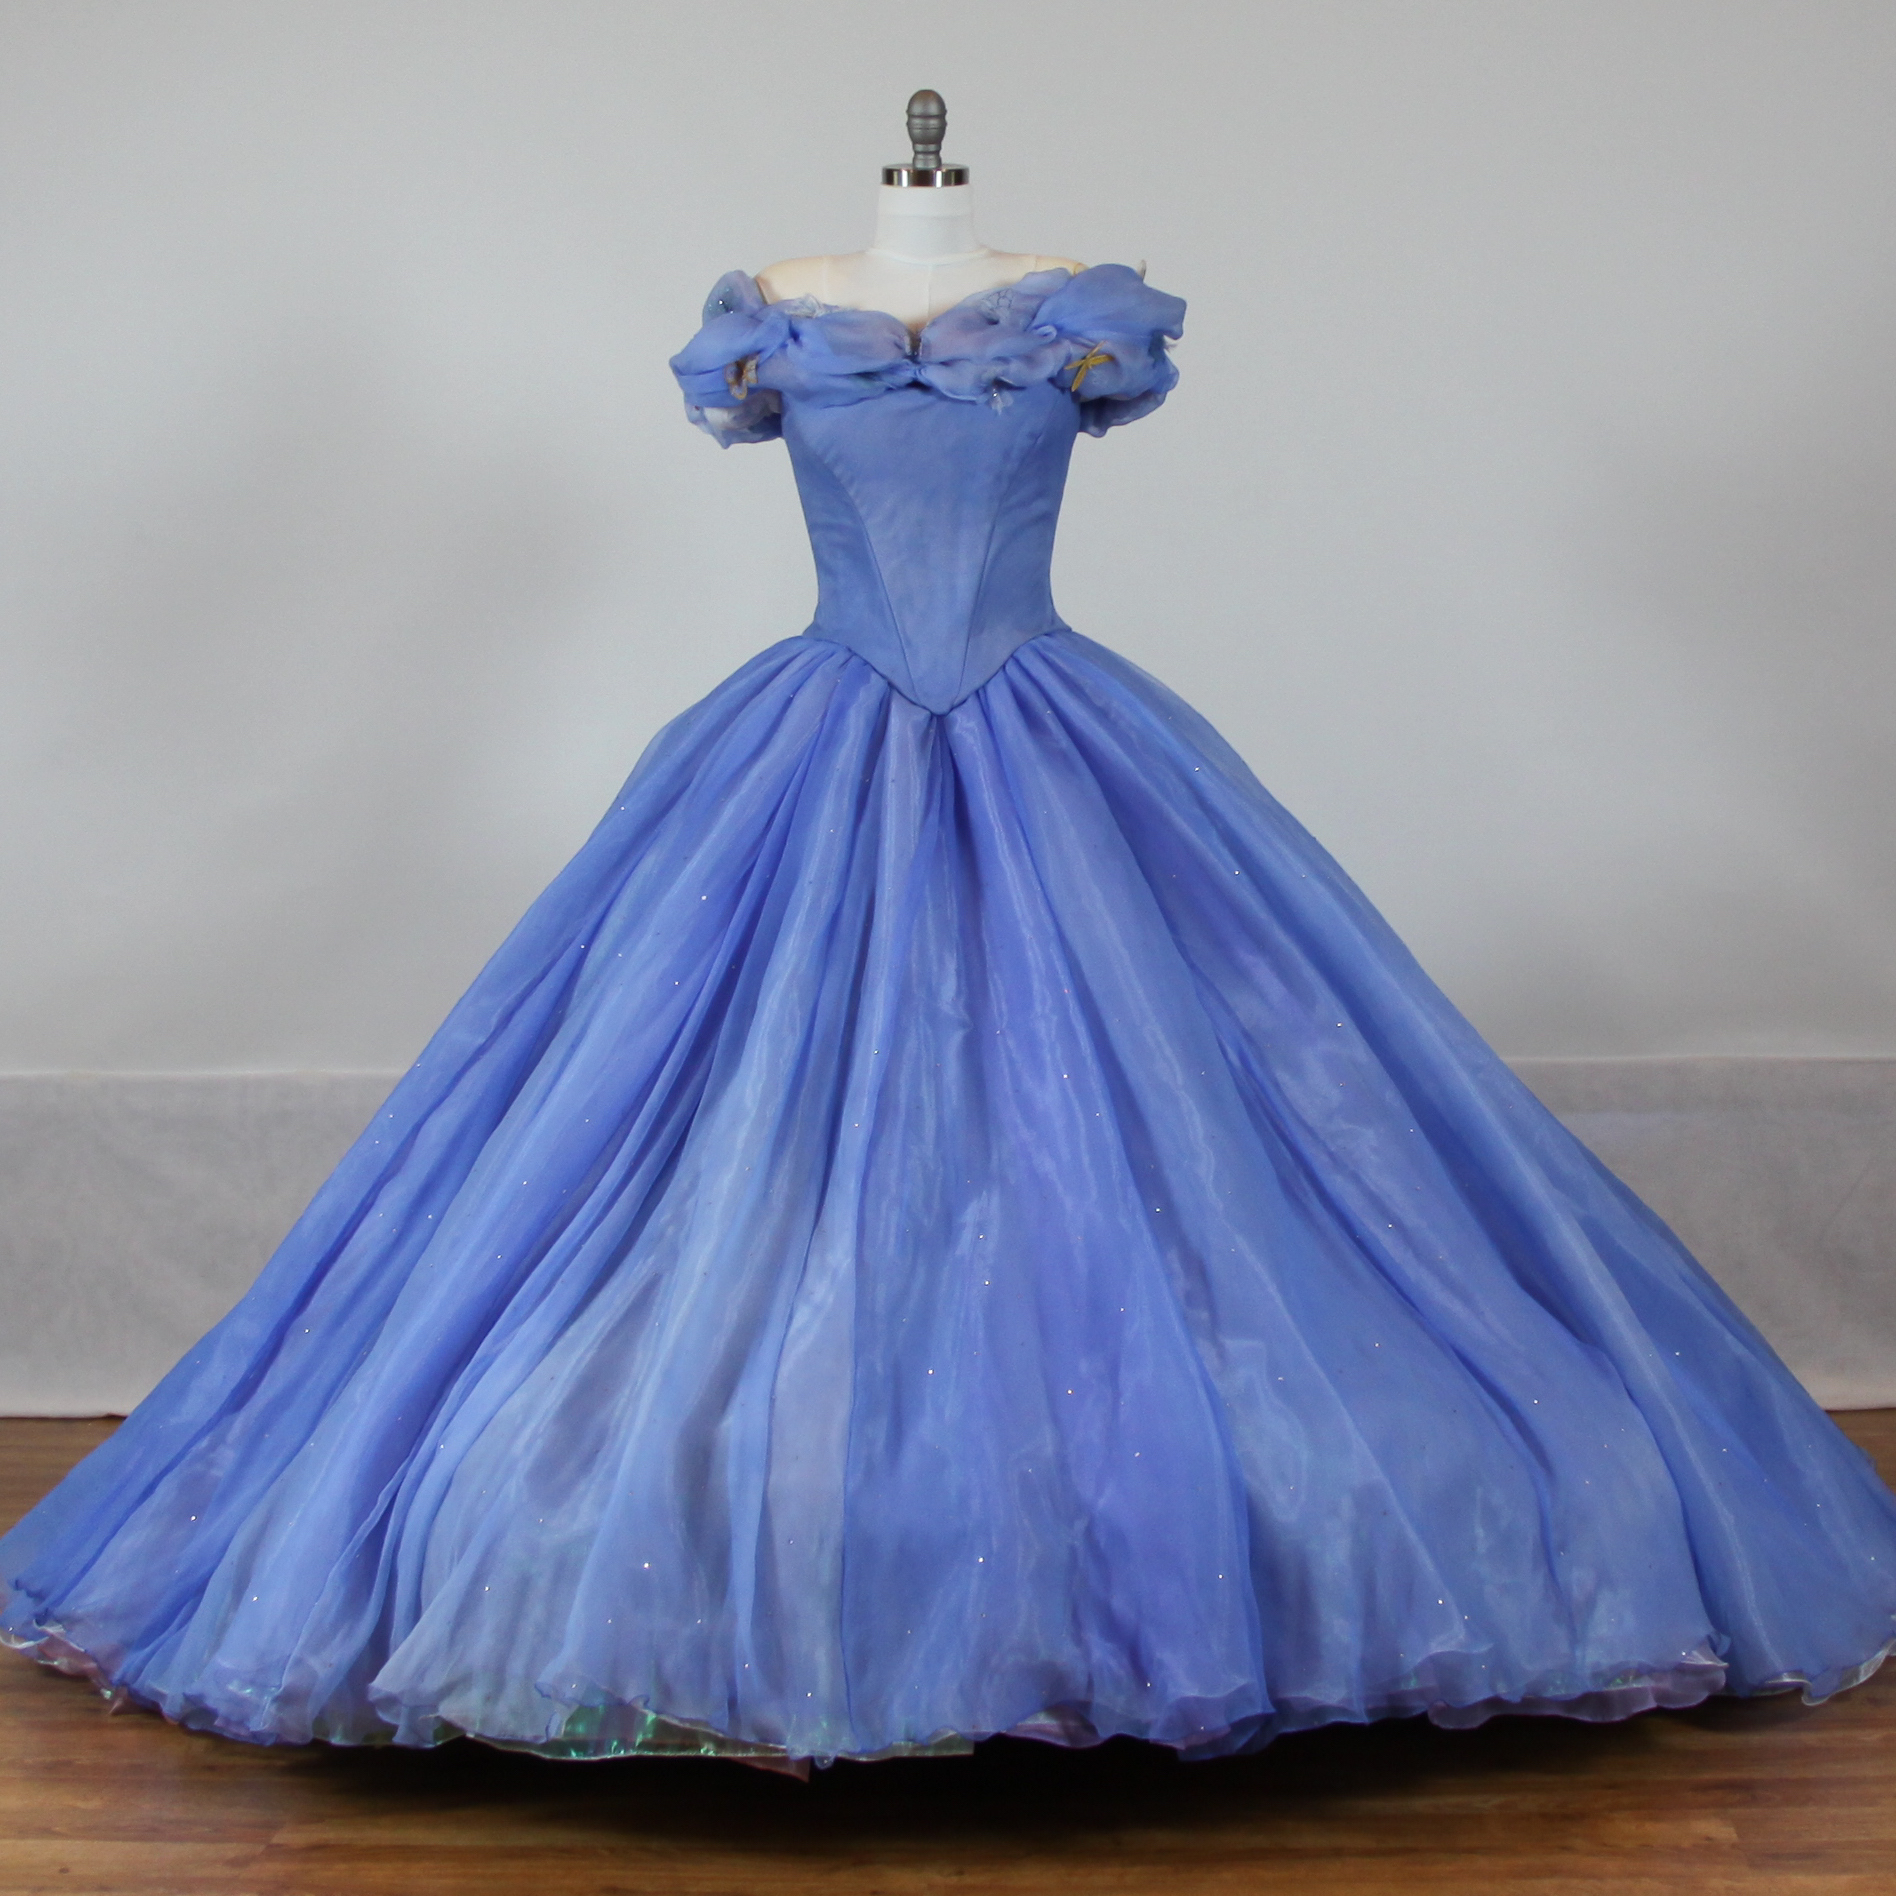 Ella's Ballgown {Upgraded}